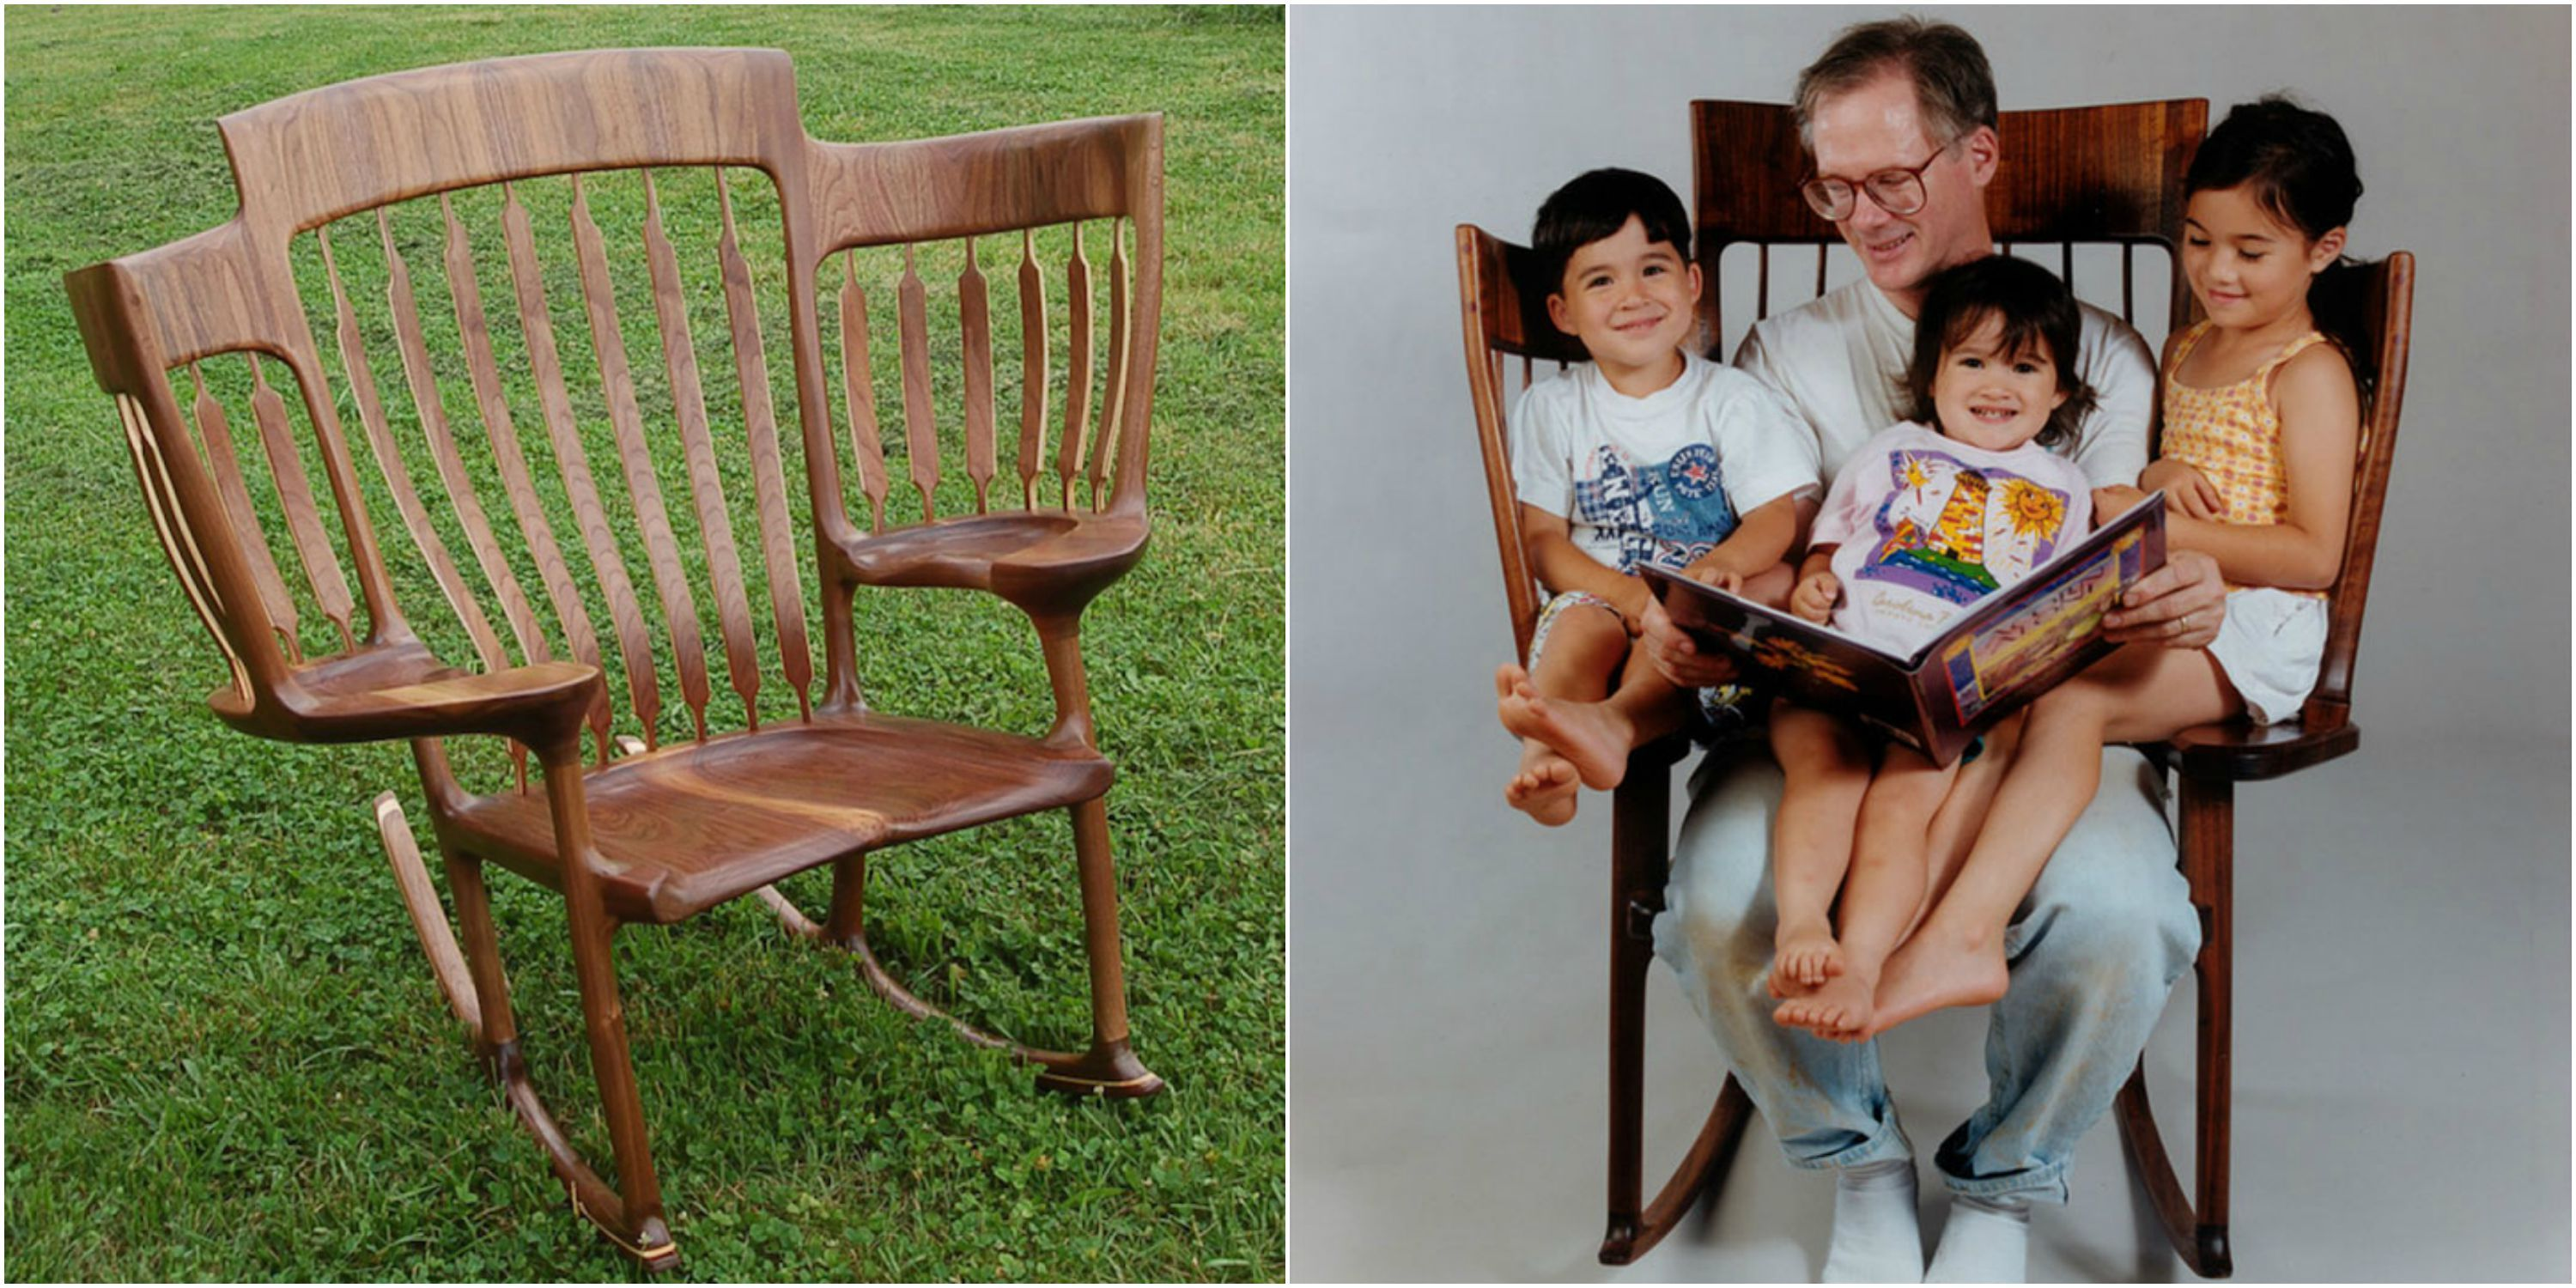 Storytime Chair Triple Rocking Chair Innovative Chair Holds Three Children